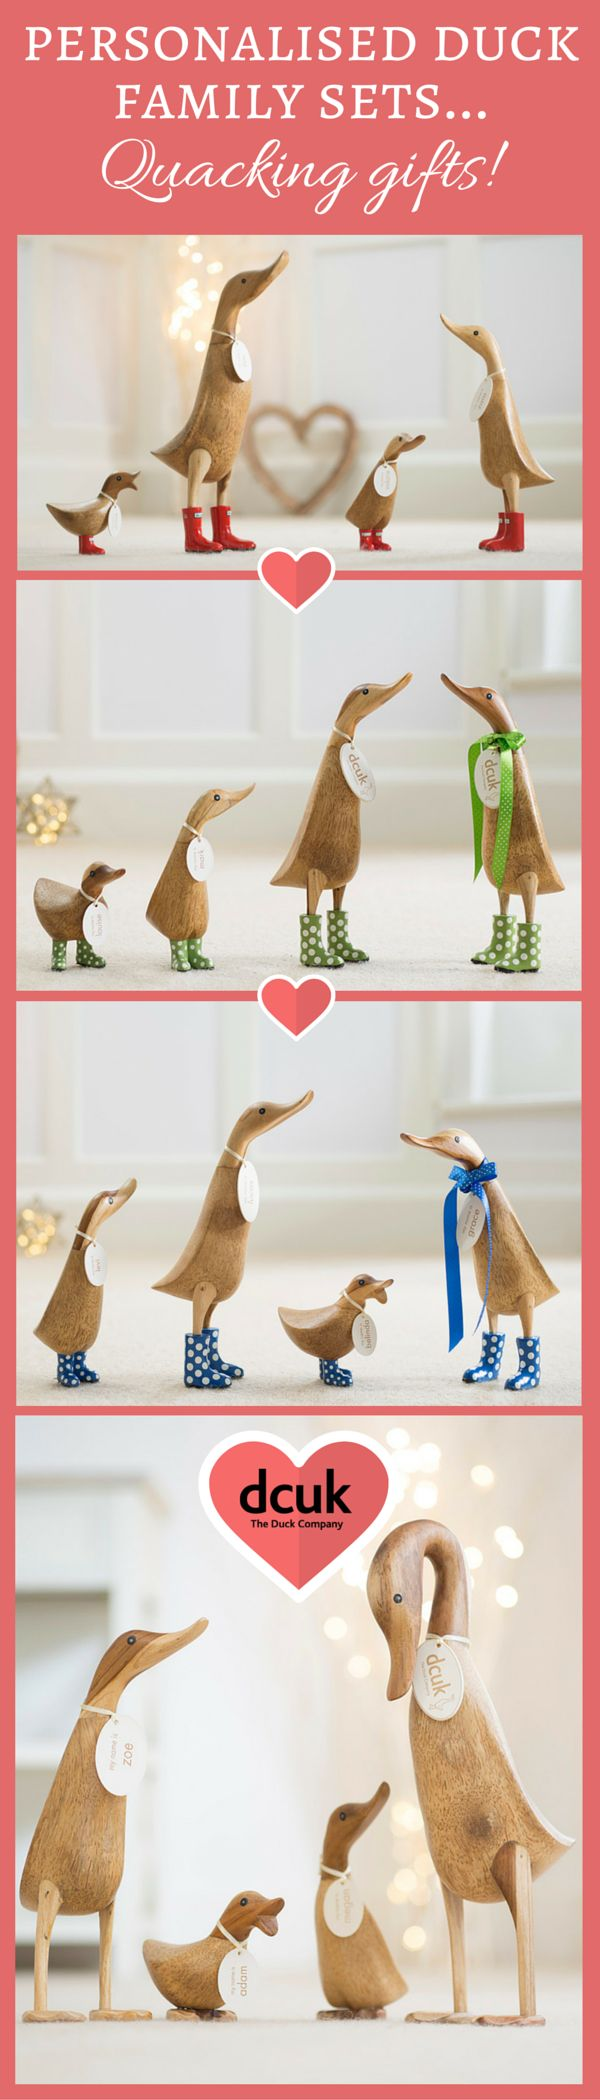 Our duck family sets make quacking gifts or home decor accessories! Each is a set of four, and each can be given the name of your choice on their tag! Waddle over to our website to see all our family sets today at The Duck Company, DCUK